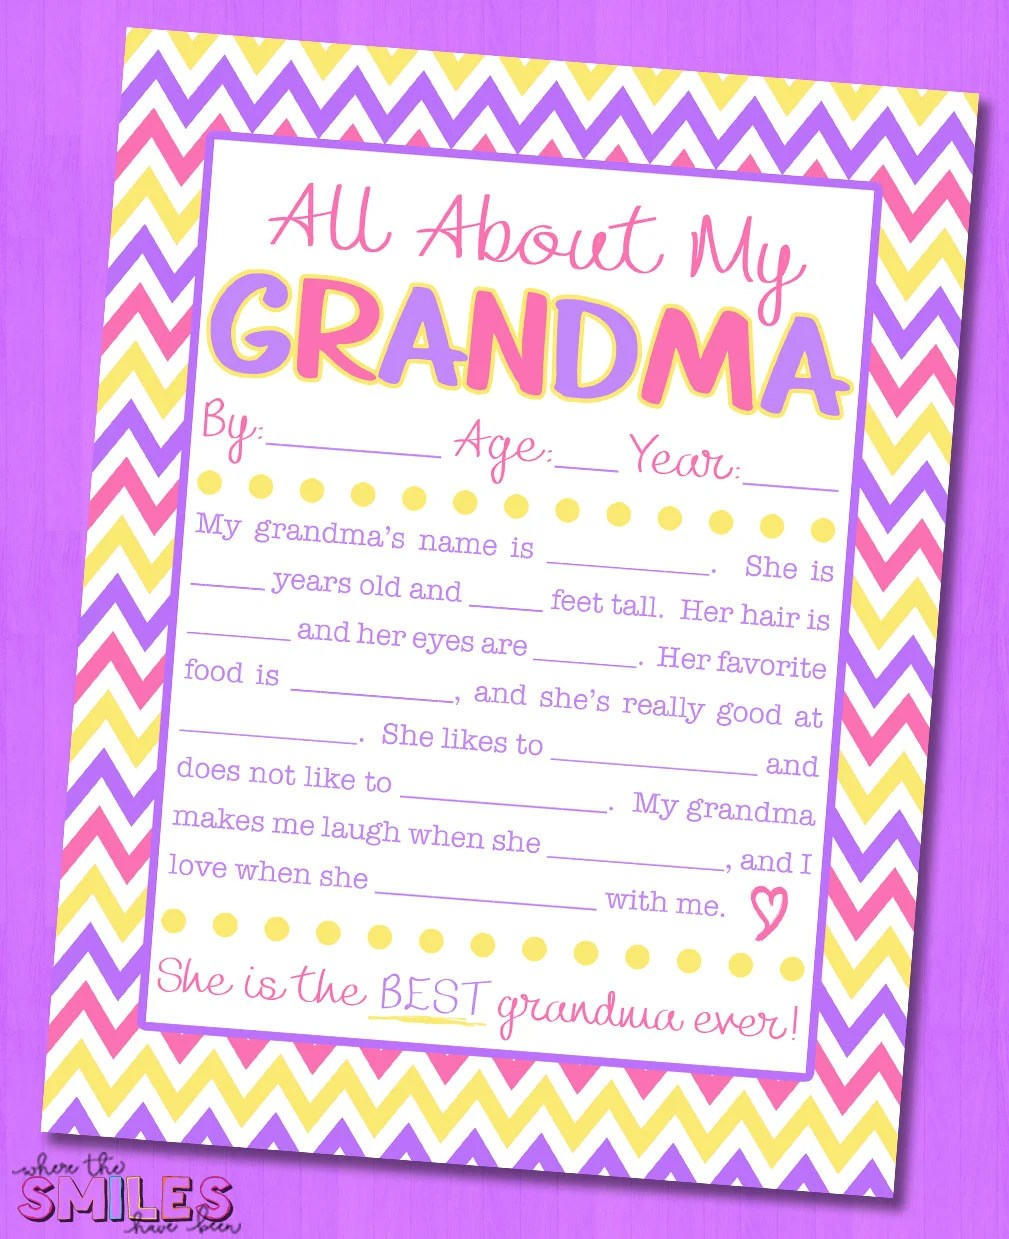 photograph regarding All About My Grandma Printable titled All Regarding My Grandma Job interview with Absolutely free Printable 8